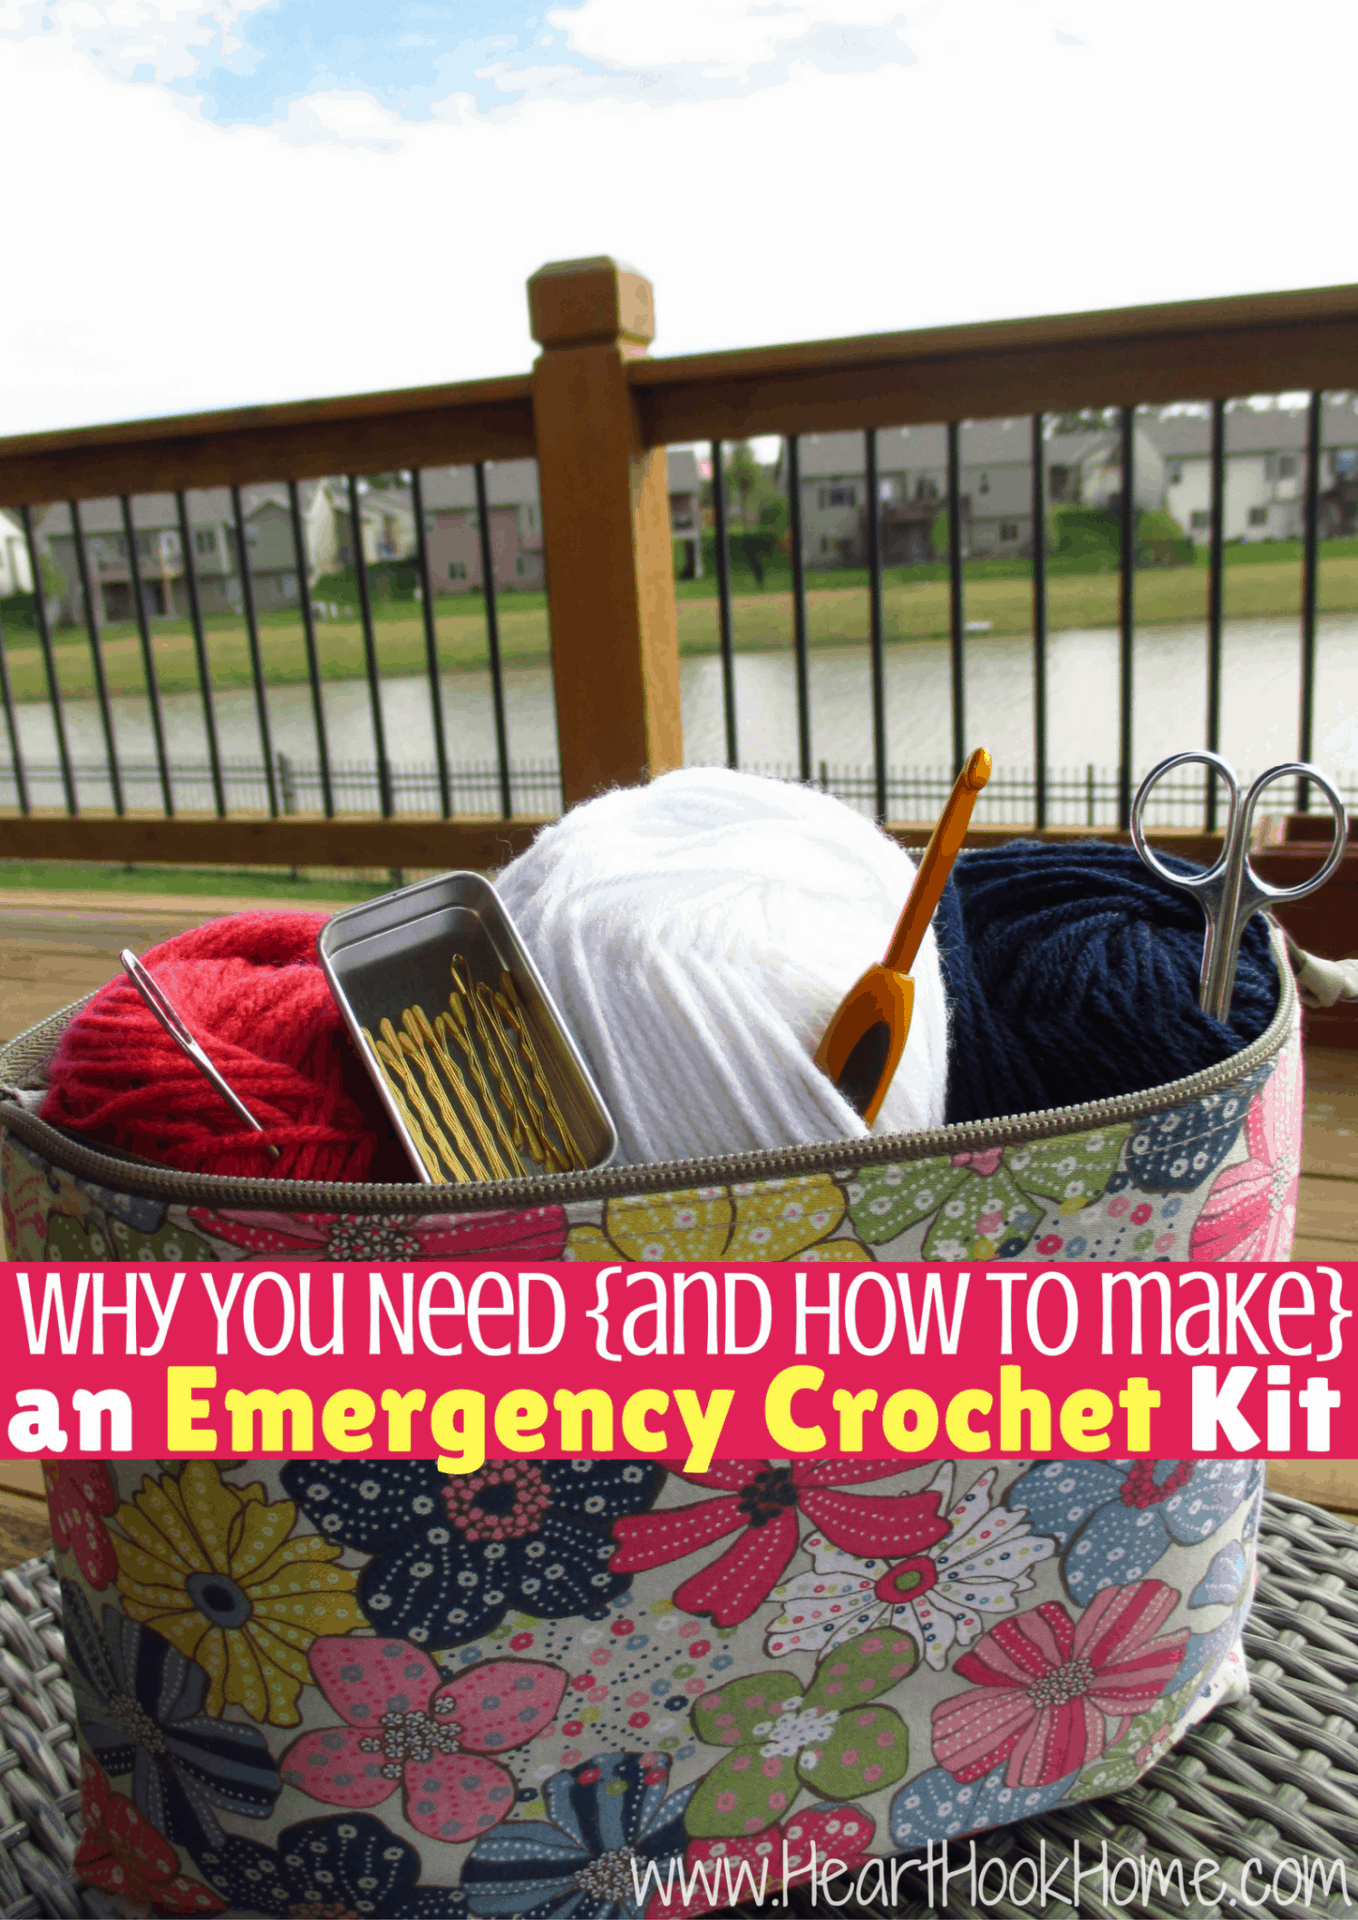 Why You Need an Emergency Crochet Kit + How to Make One